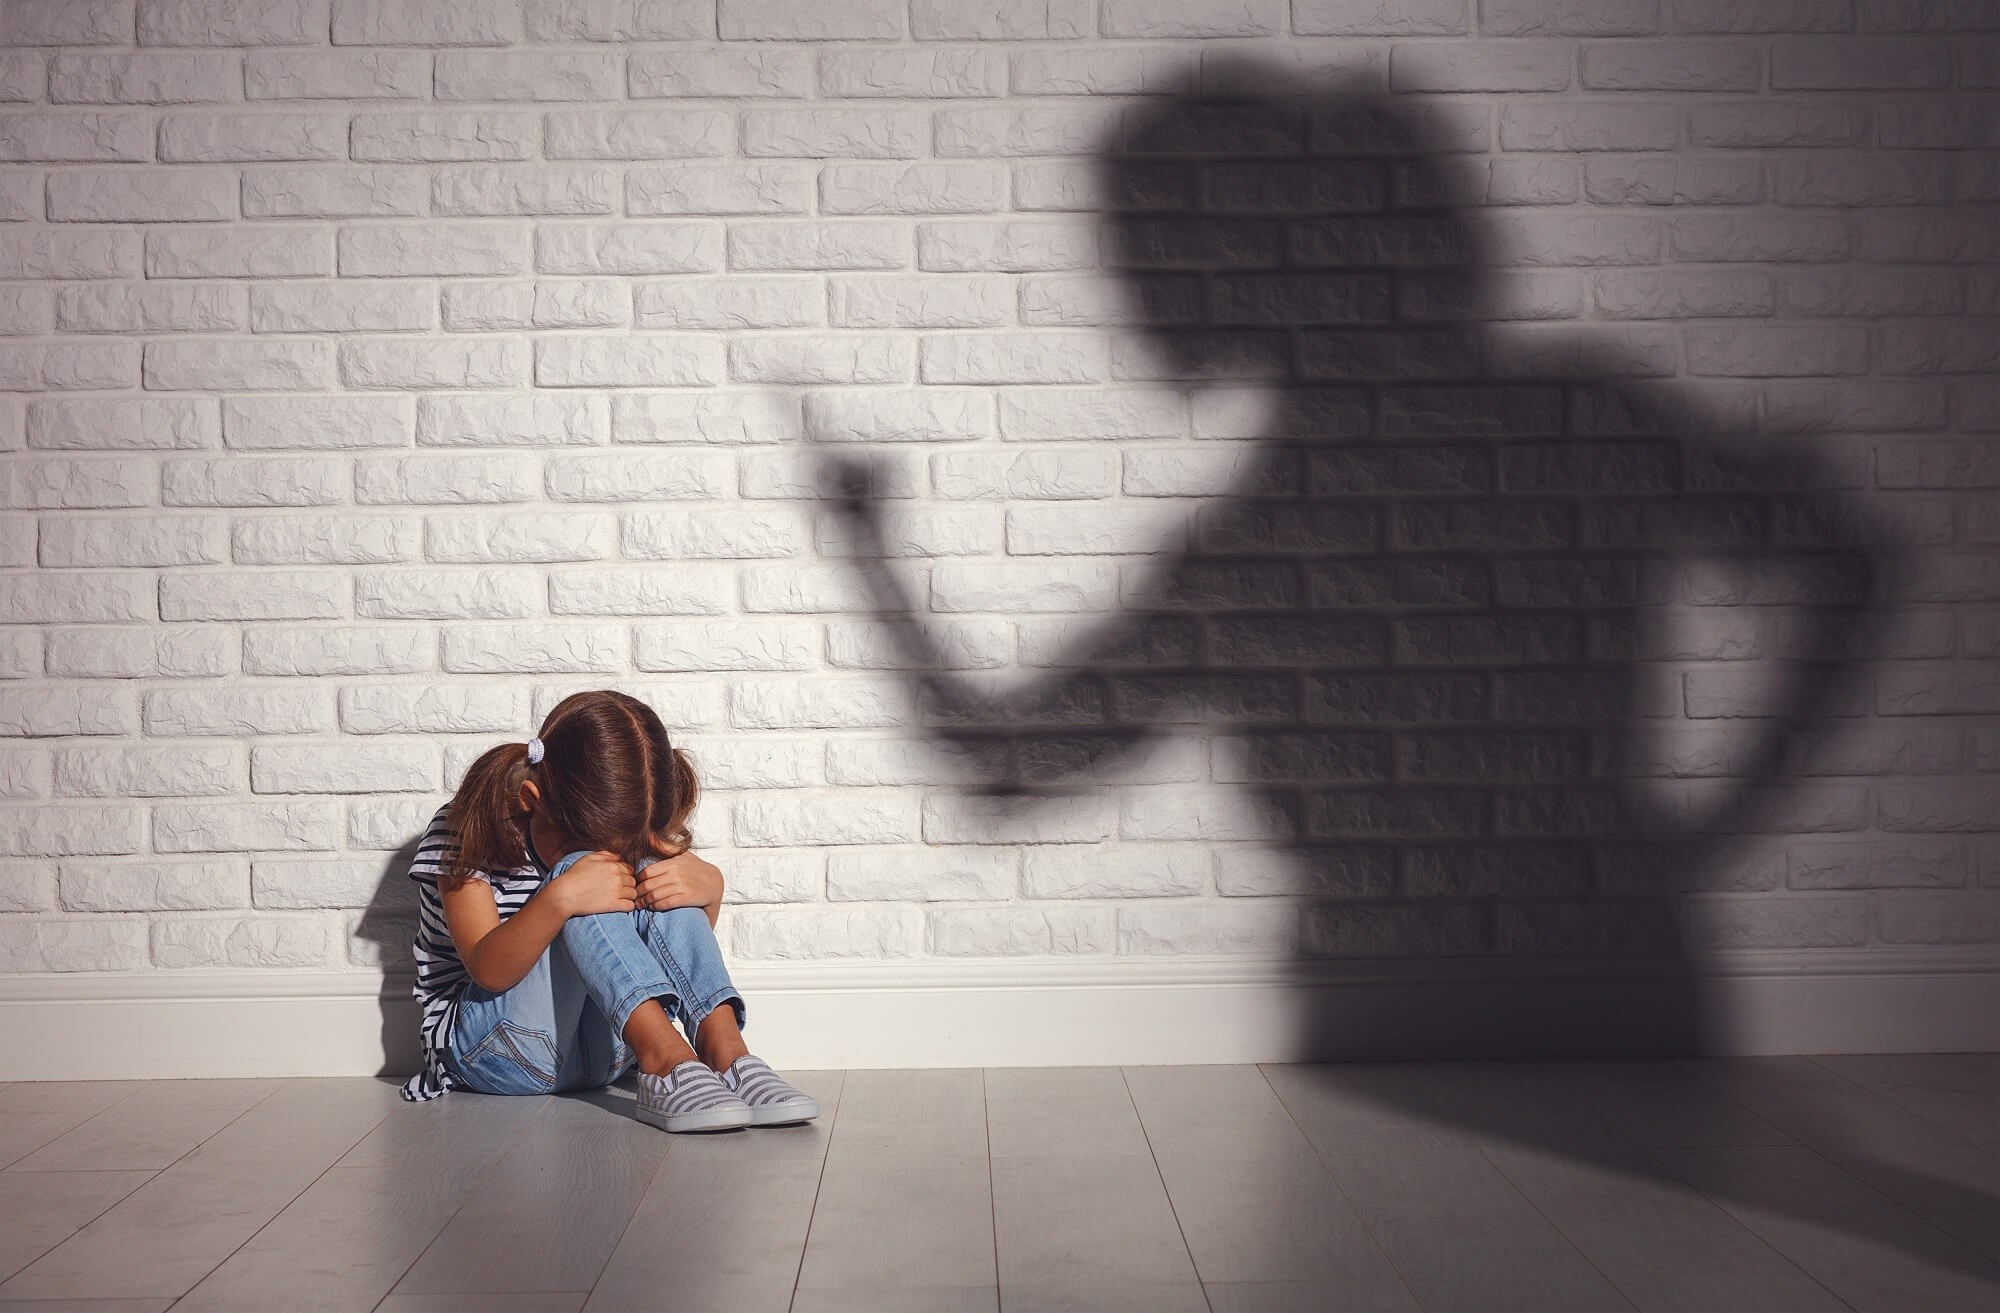 USPSTF: Evidence Lacking for Prevention of Child Maltreatment